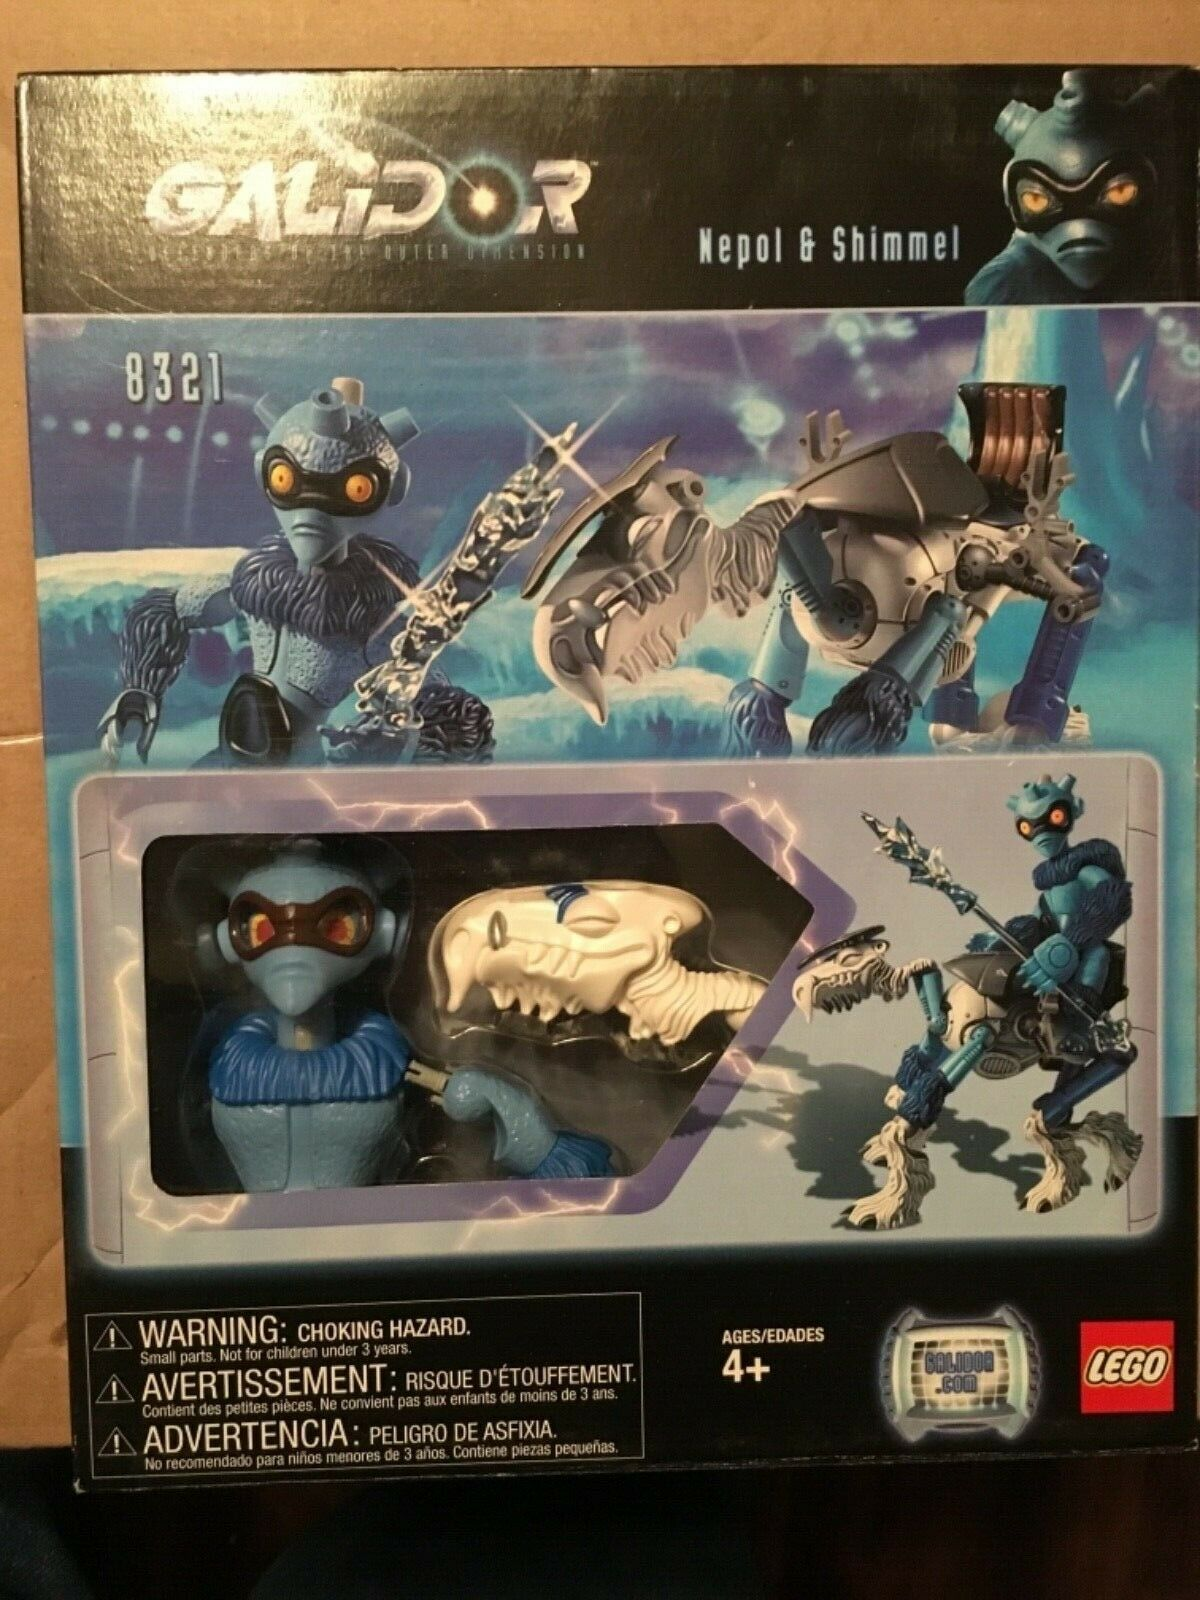 New LEGO LEGO LEGO 8321 Galidor Defenders of Outer Dimensions Nepol & Shimmel Building Set 4dace2